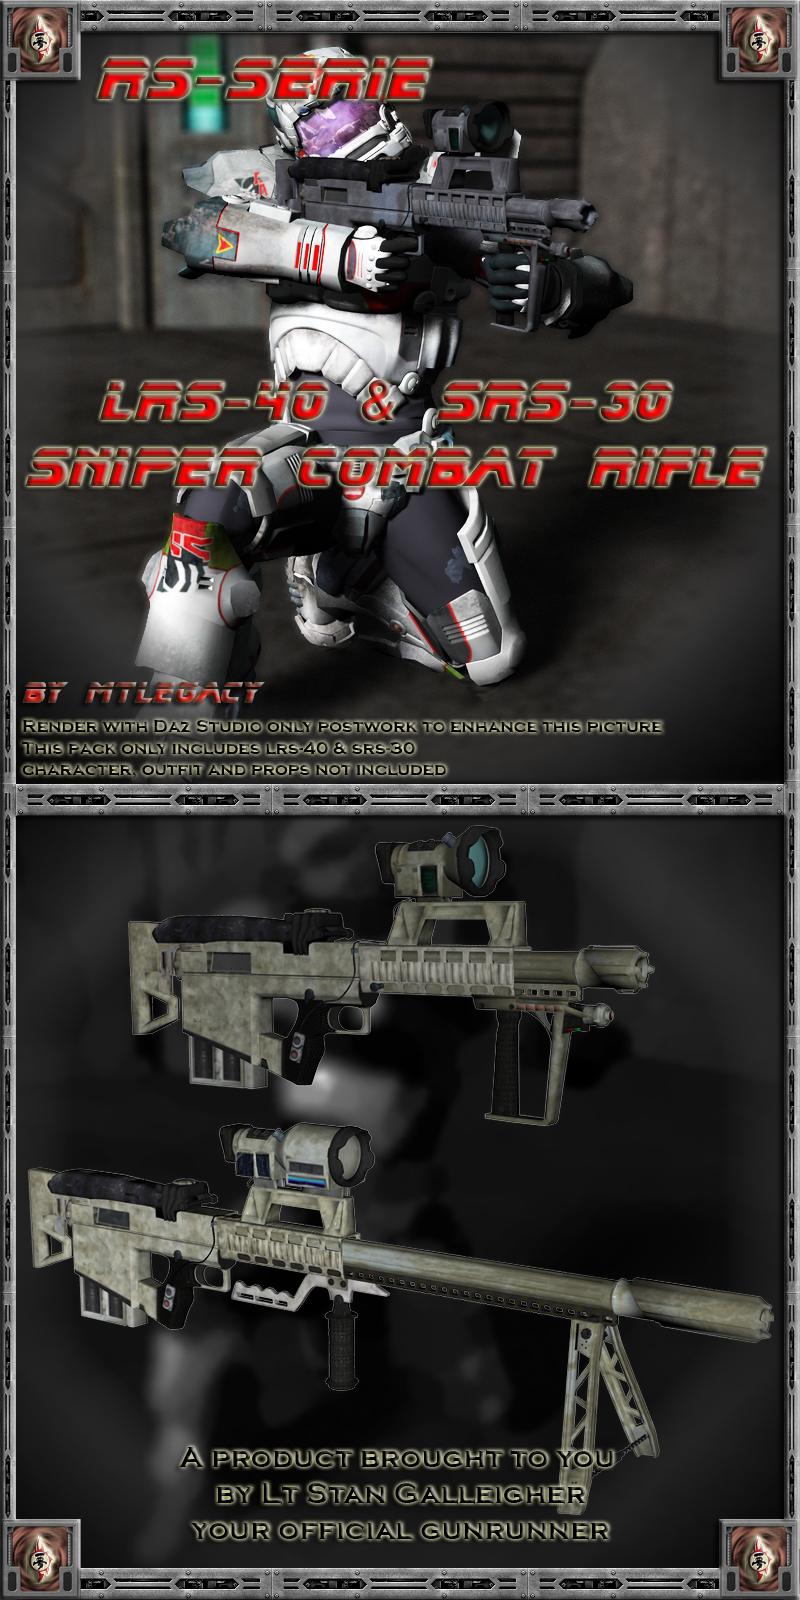 RS-Serie Sniper Rifle